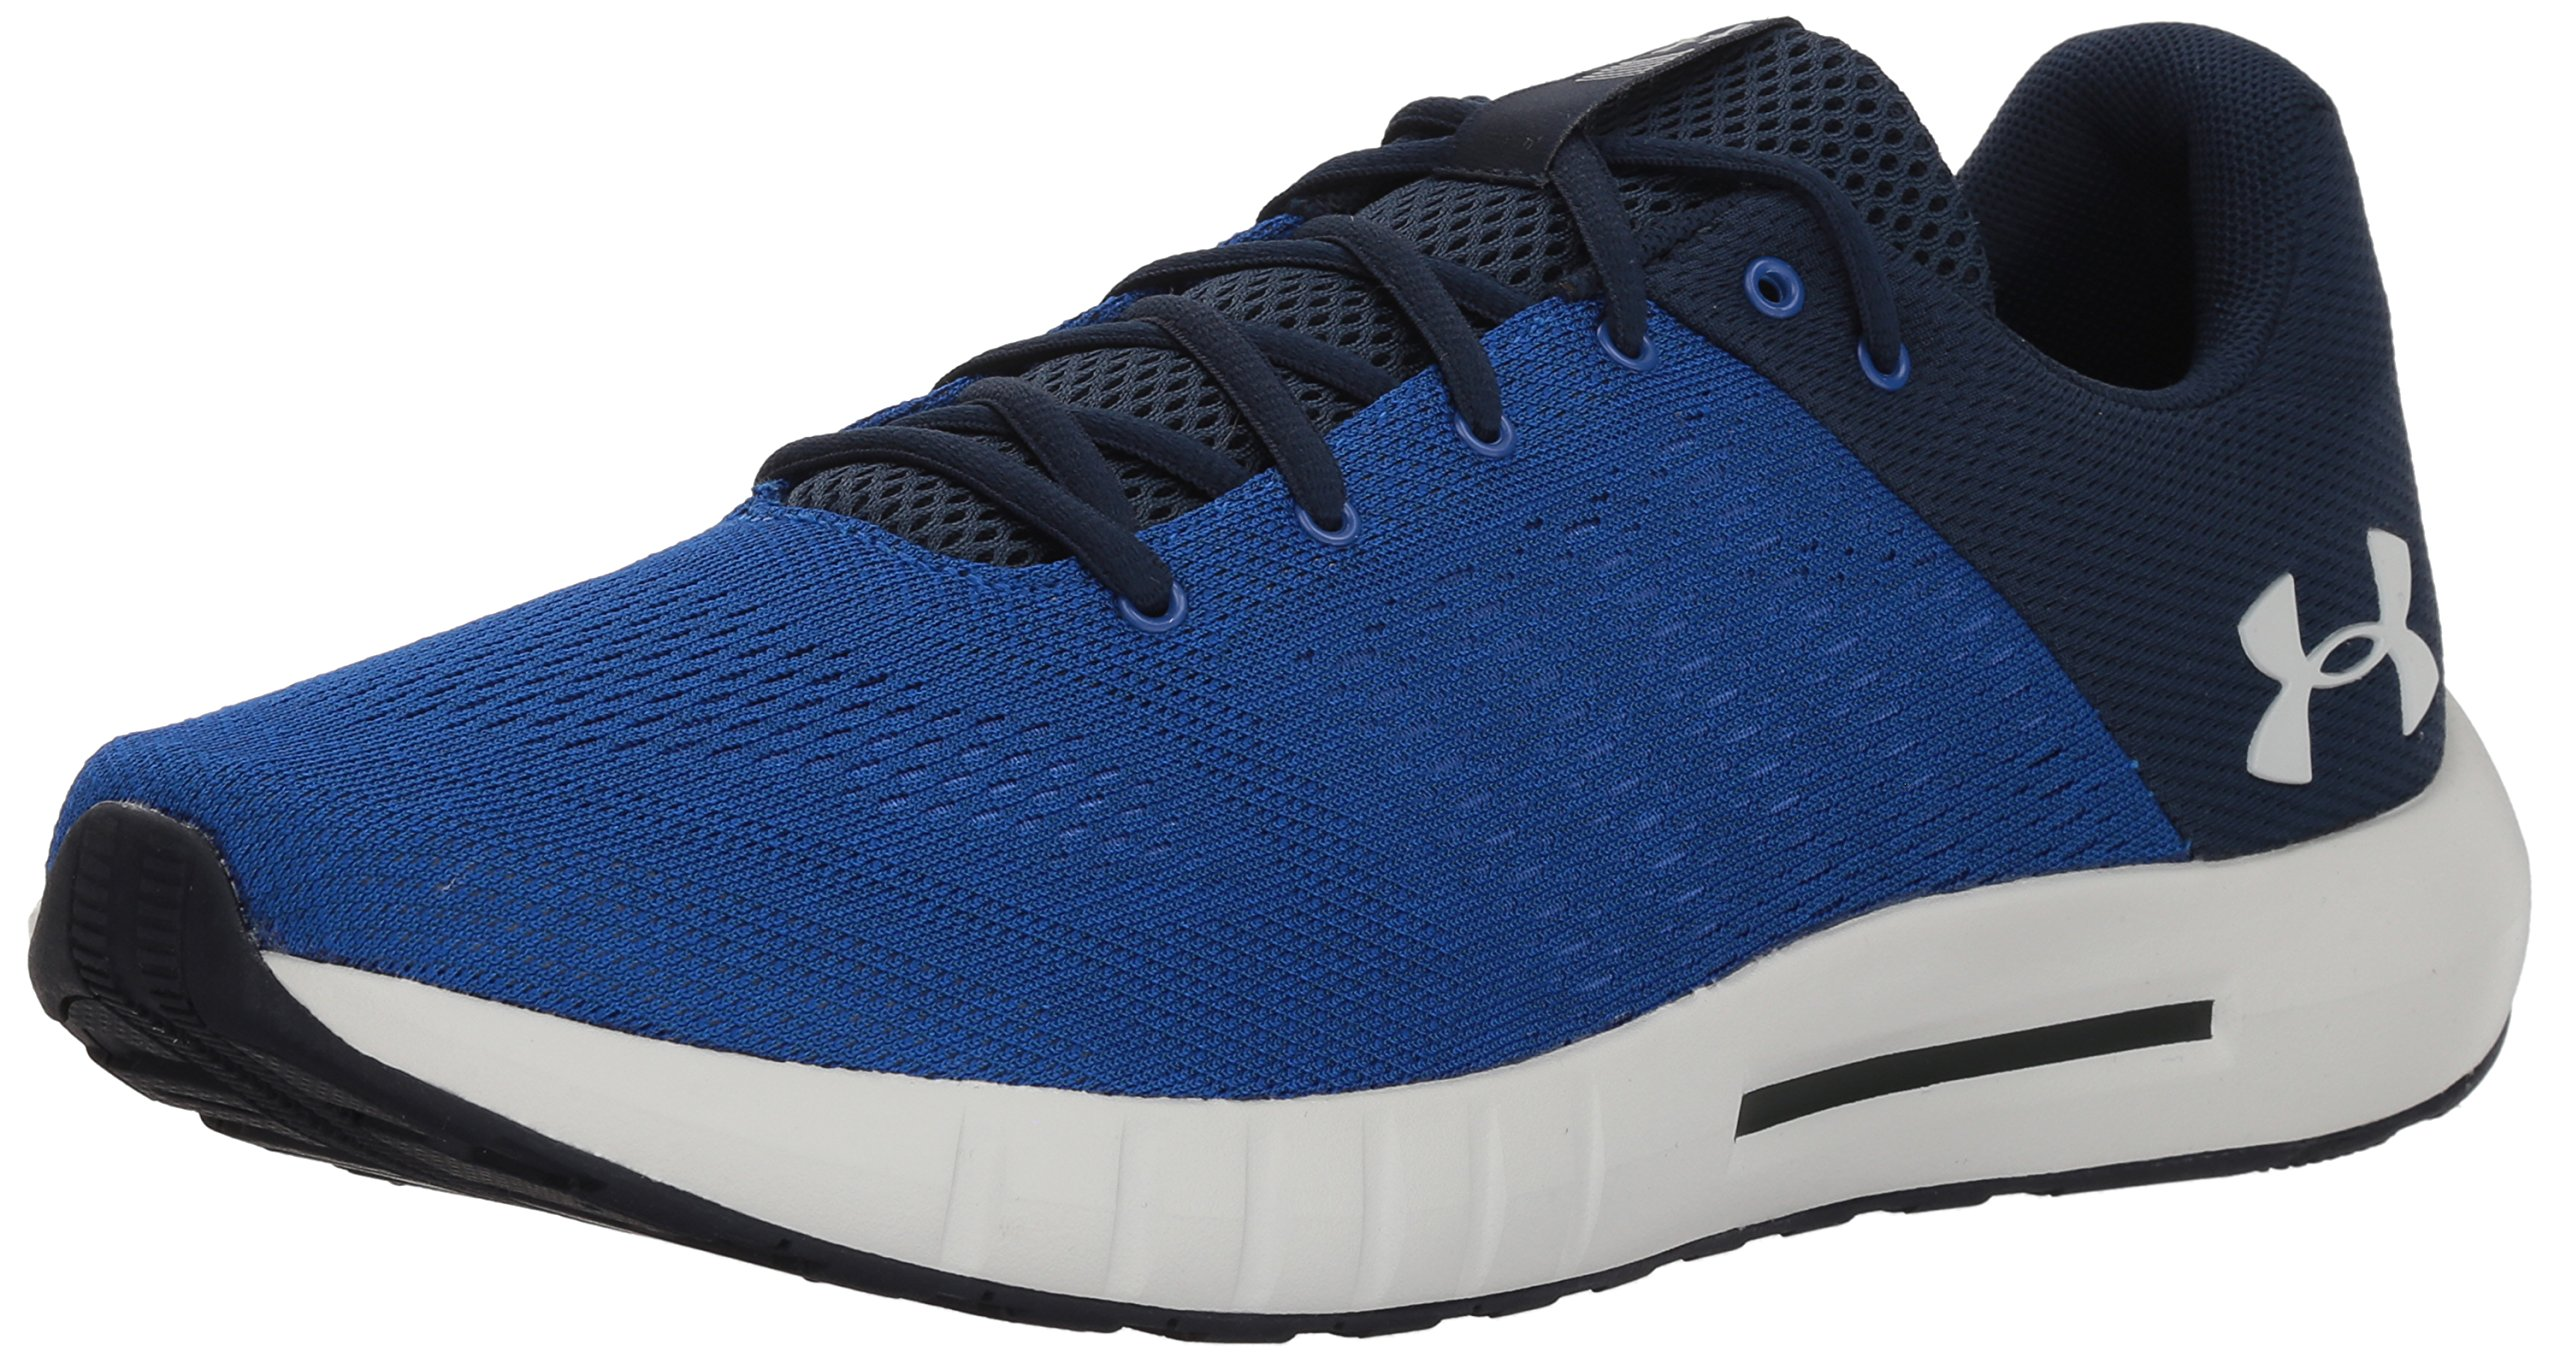 Under Armour Men's Micro G Pursuit Running Shoe, Blue, 9